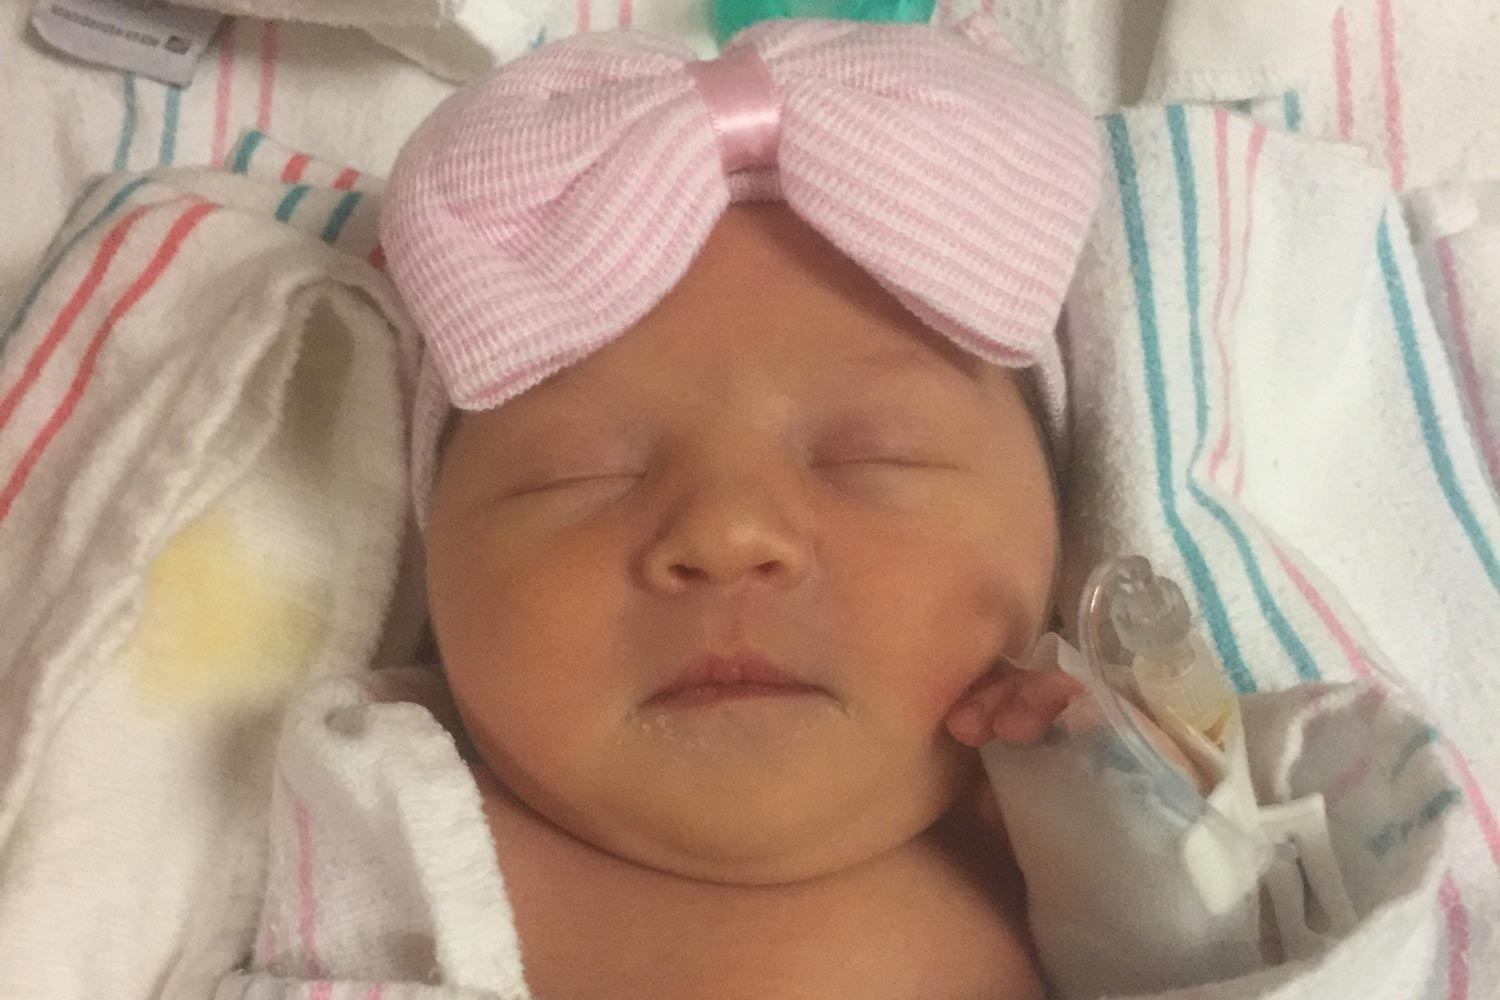 Adrielle Charlotte Smith safely arrived in the midst of one of the worst storms in U.S. history. (Photo courtesy of Greg and Annie Smith)